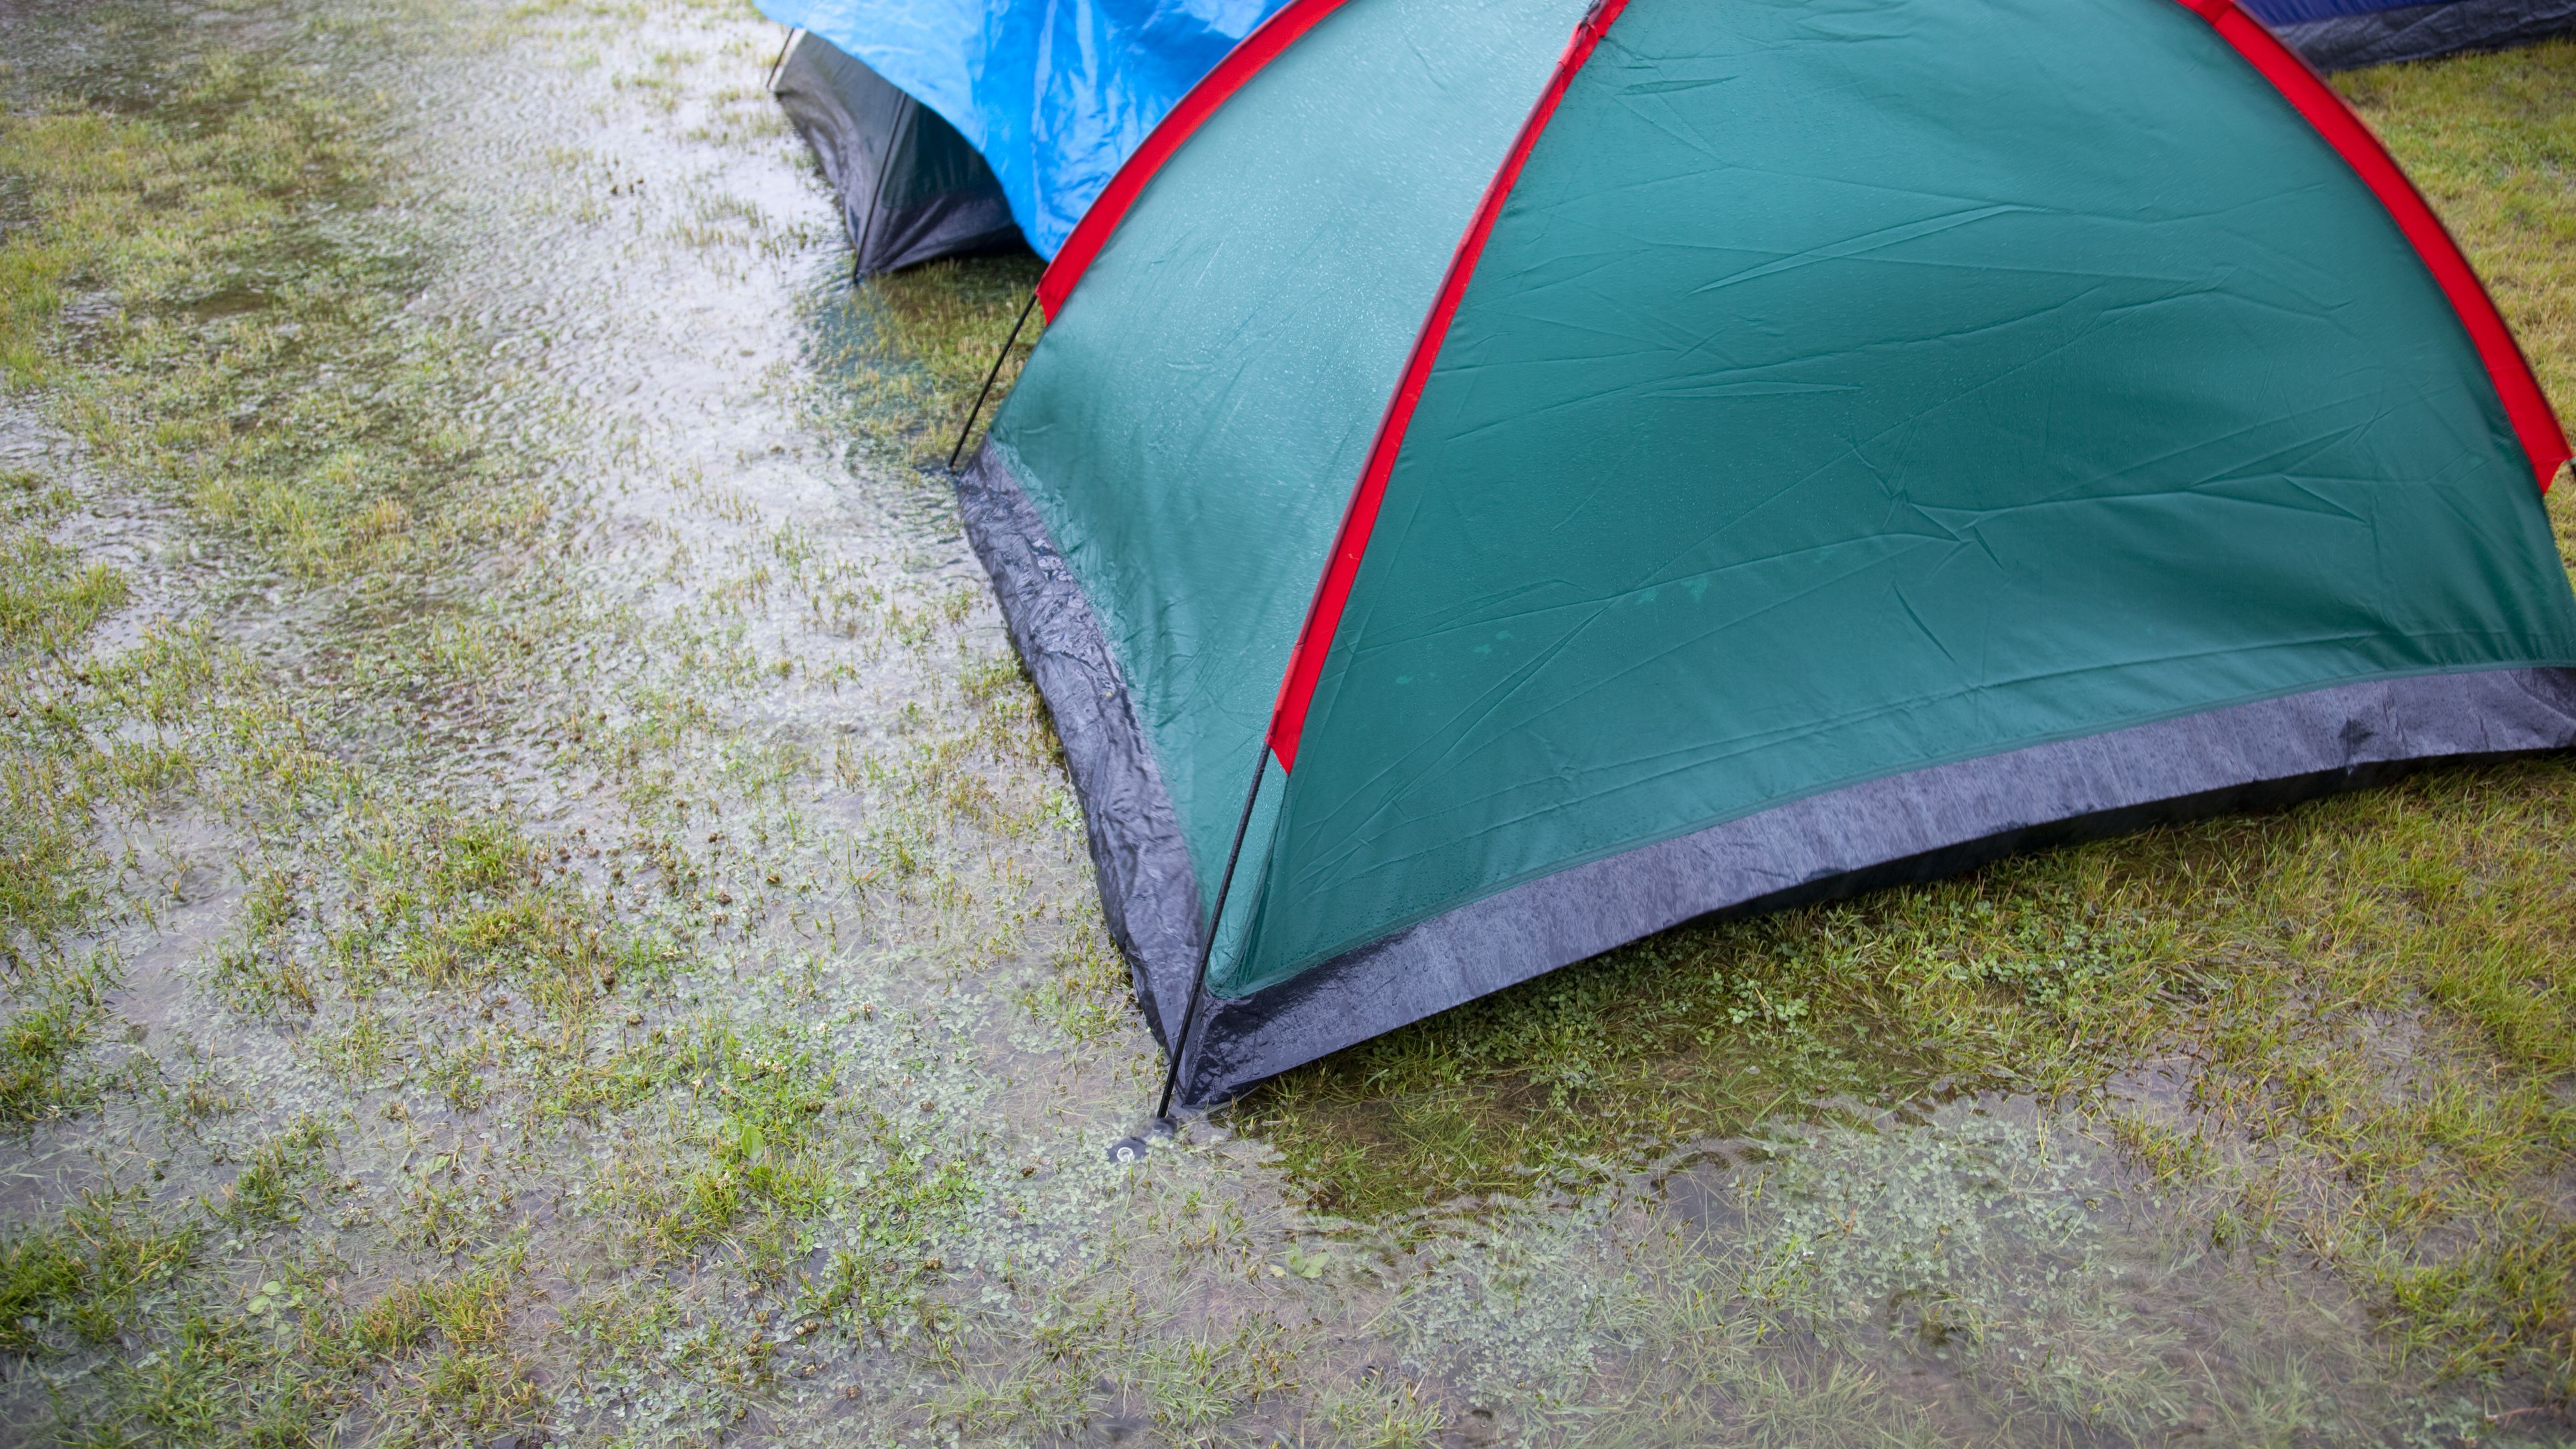 Essentials For Using A Ground Cover Tarp With Your Tent